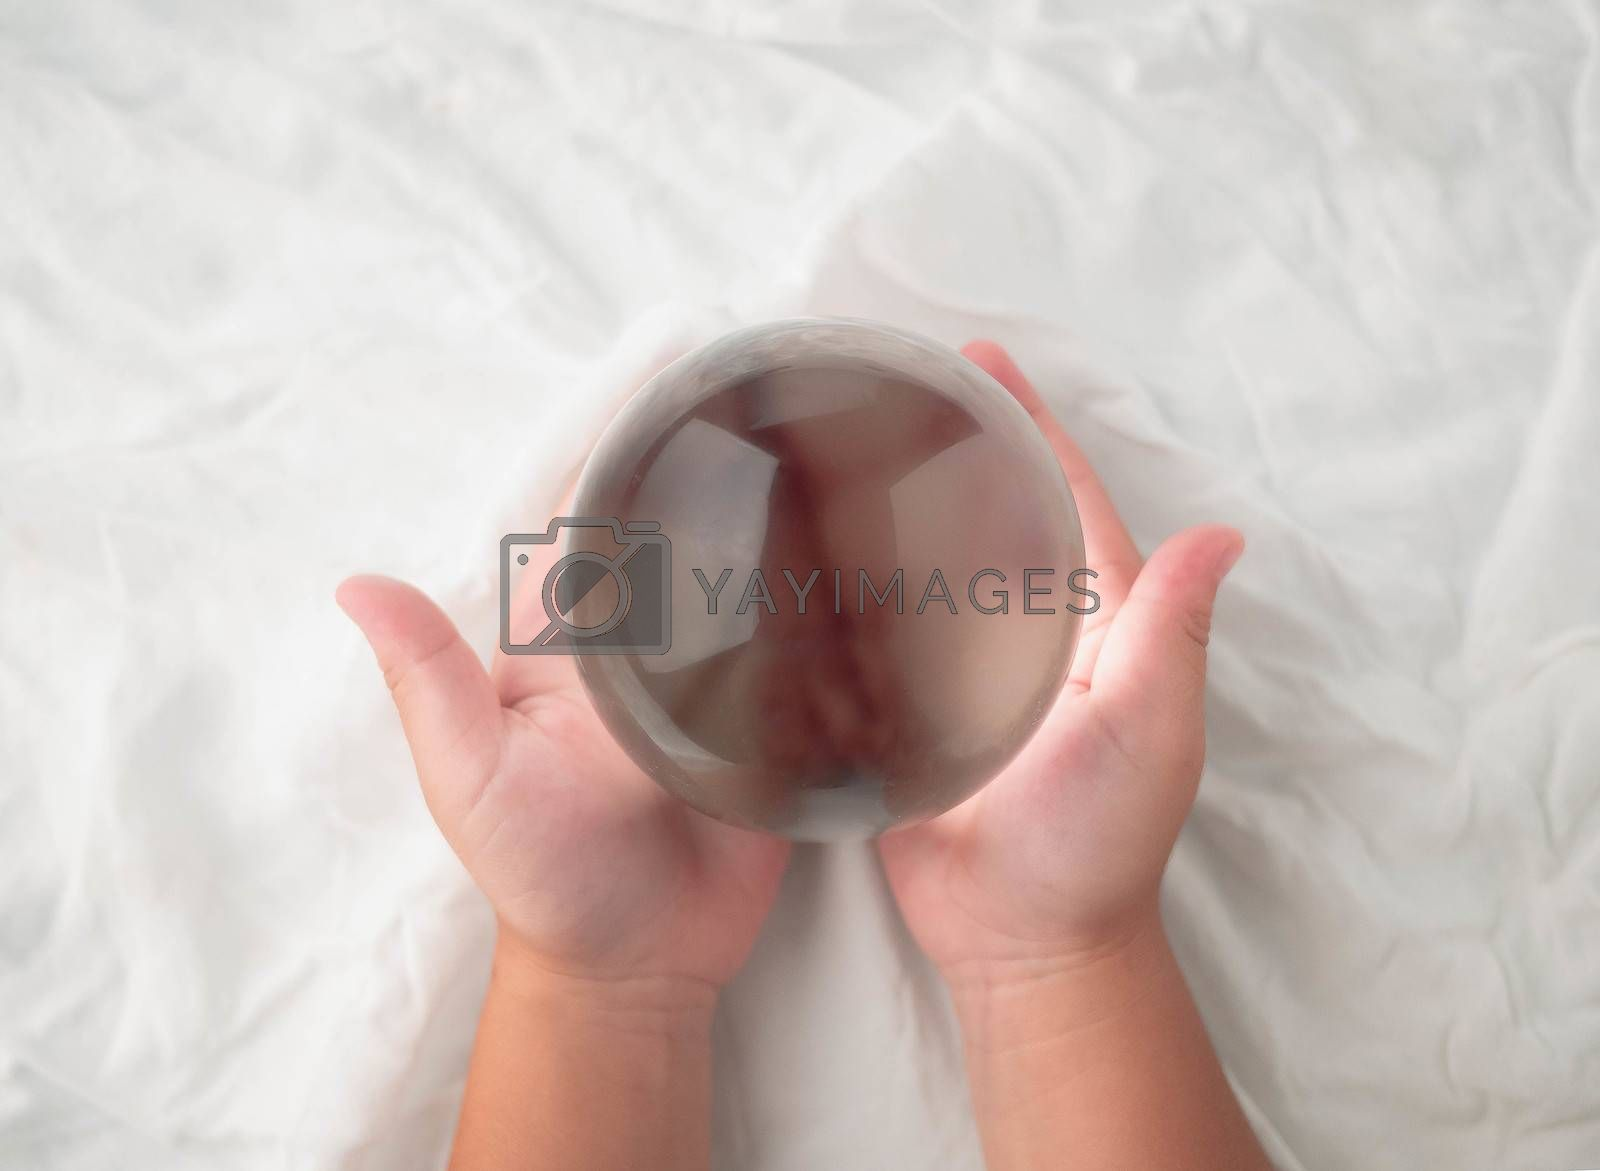 Hand holding a crystal glass ball transparent on white fabric background.